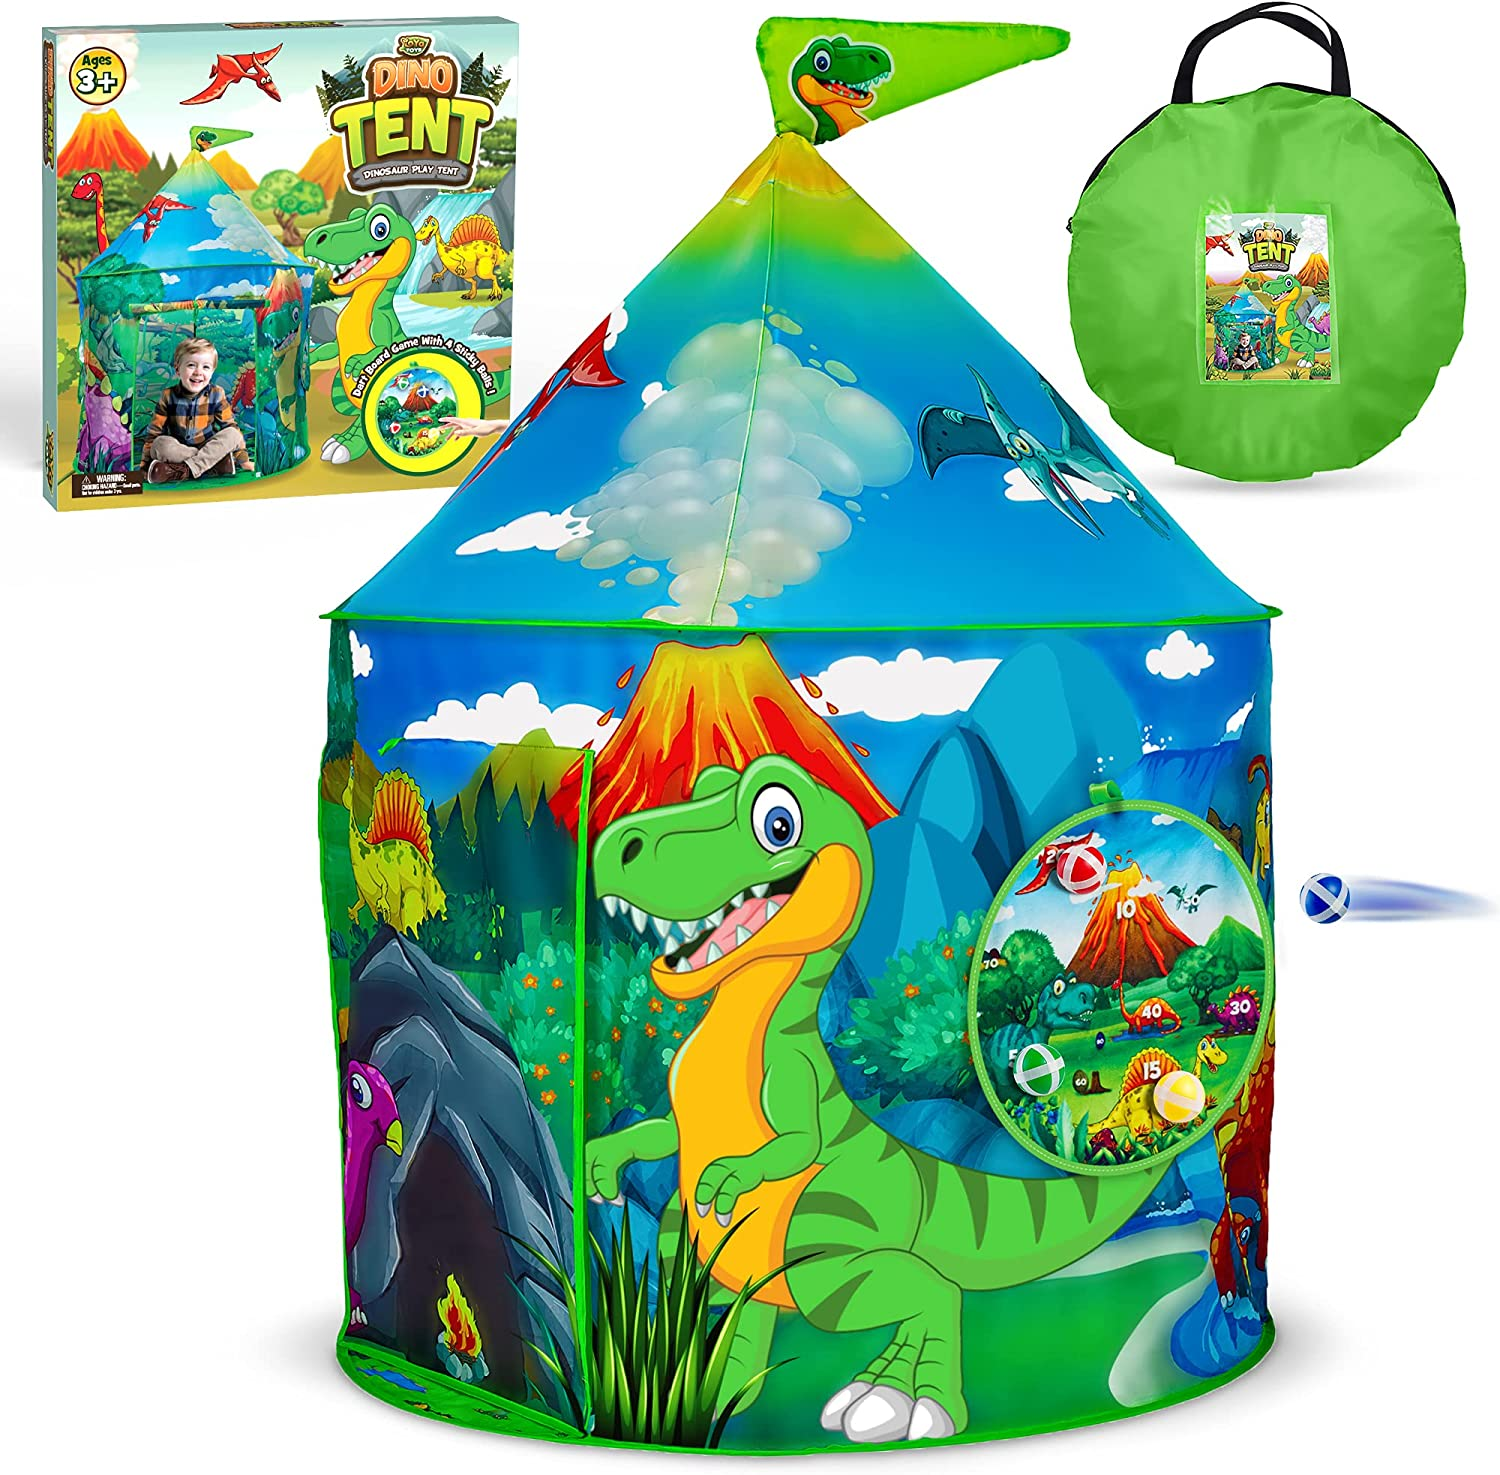 YoYa Toys Dinosaur Ranking TOP13 Play 70% OFF Outlet Tent for Girls Toddler Foldable Boys